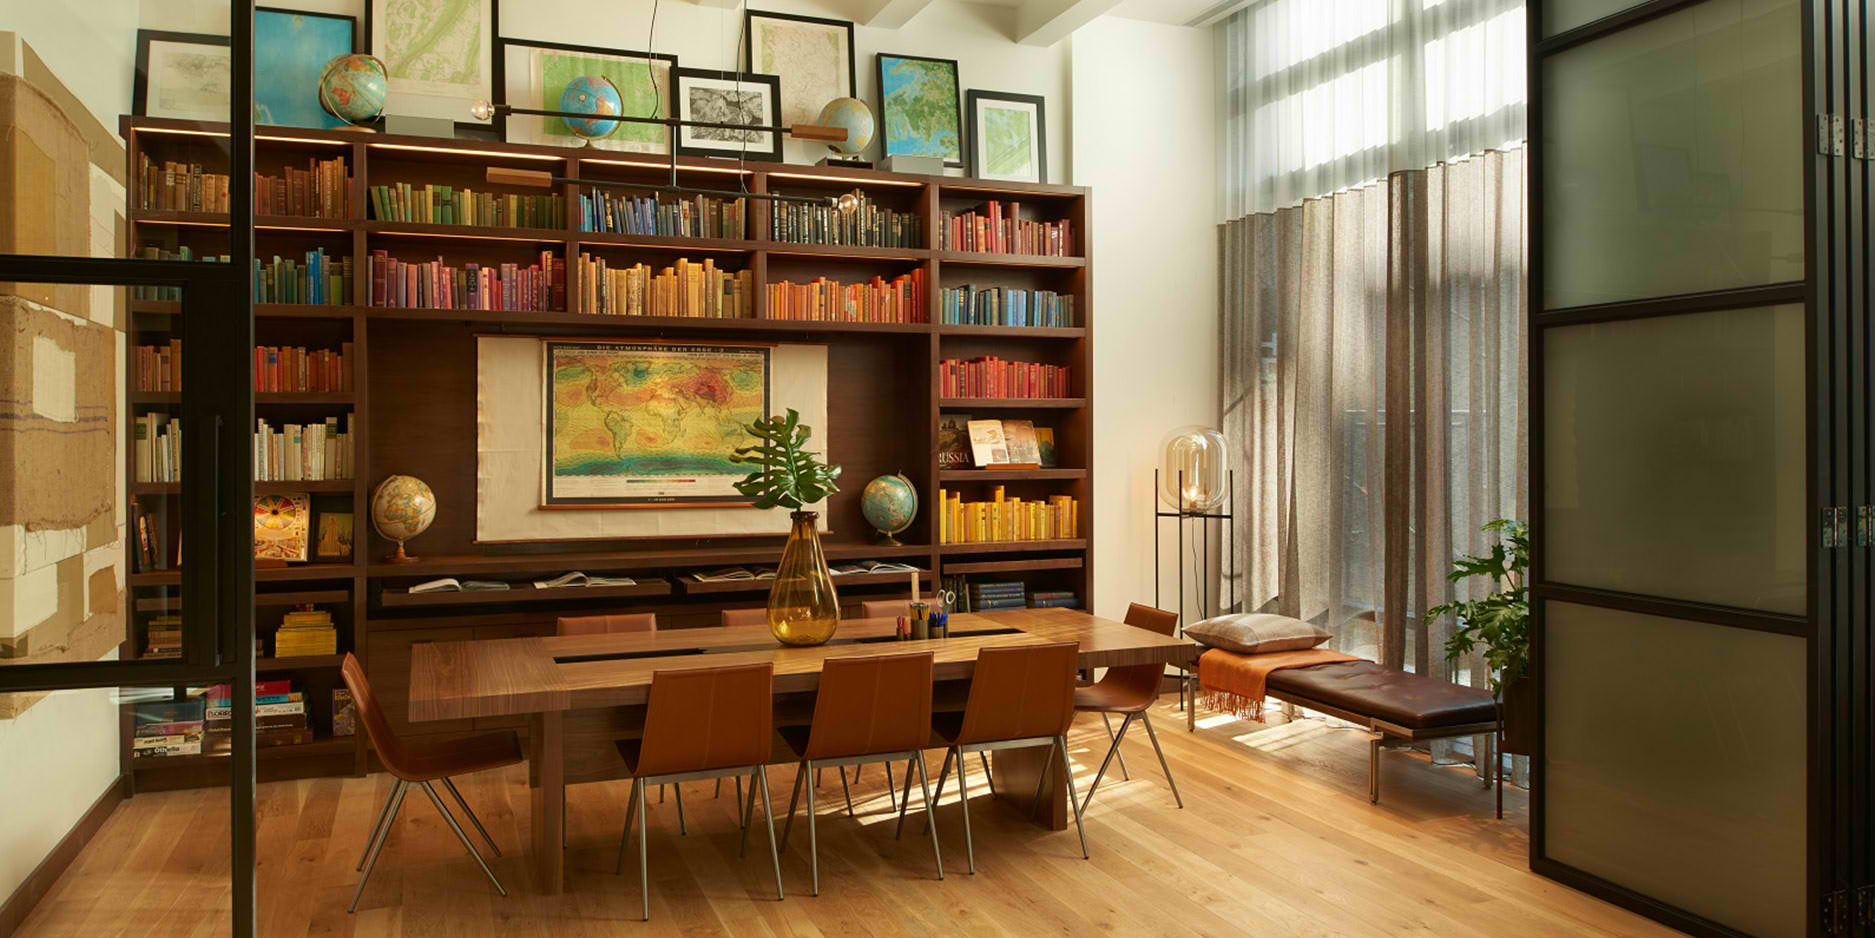 Arlo NoMad studio space with large shelf of colorful books and globes and dramed maps and a long wooden table in the center of the room